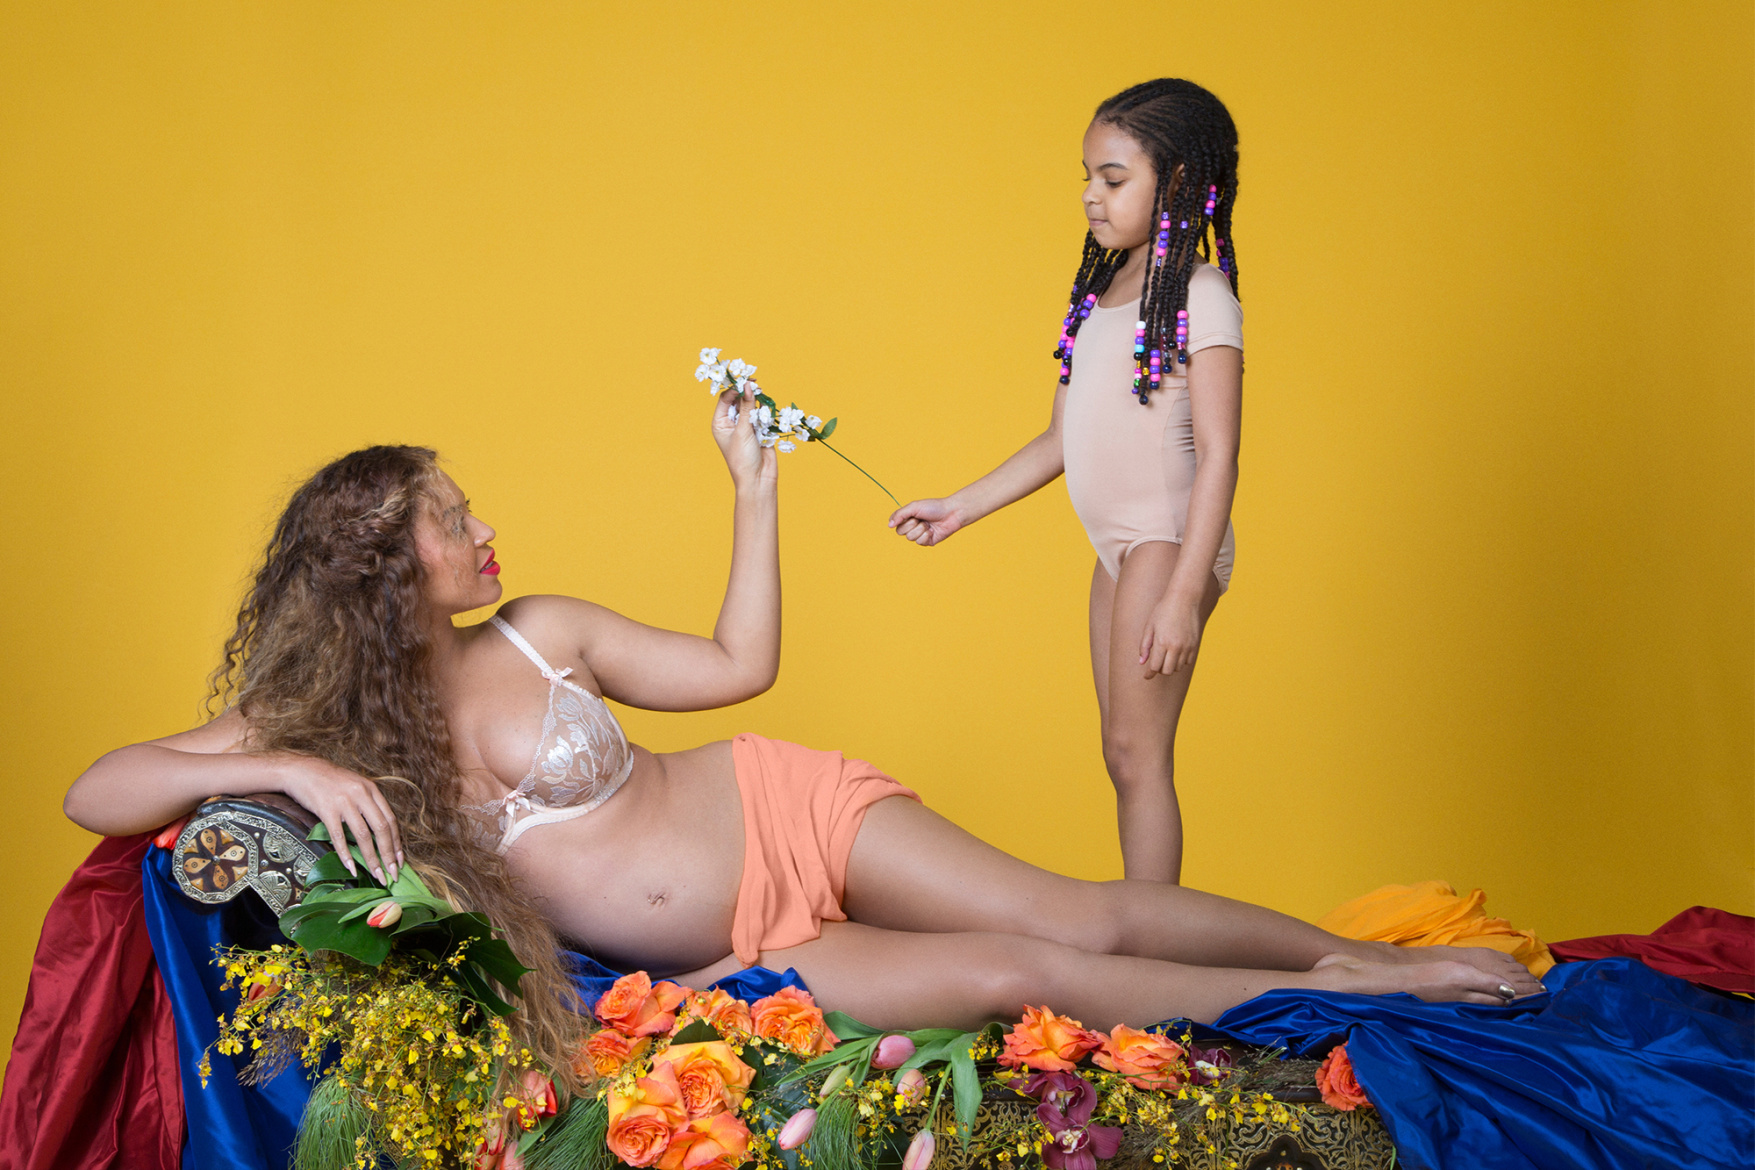 beyonce-twins-pregnancy-photoshoot-4